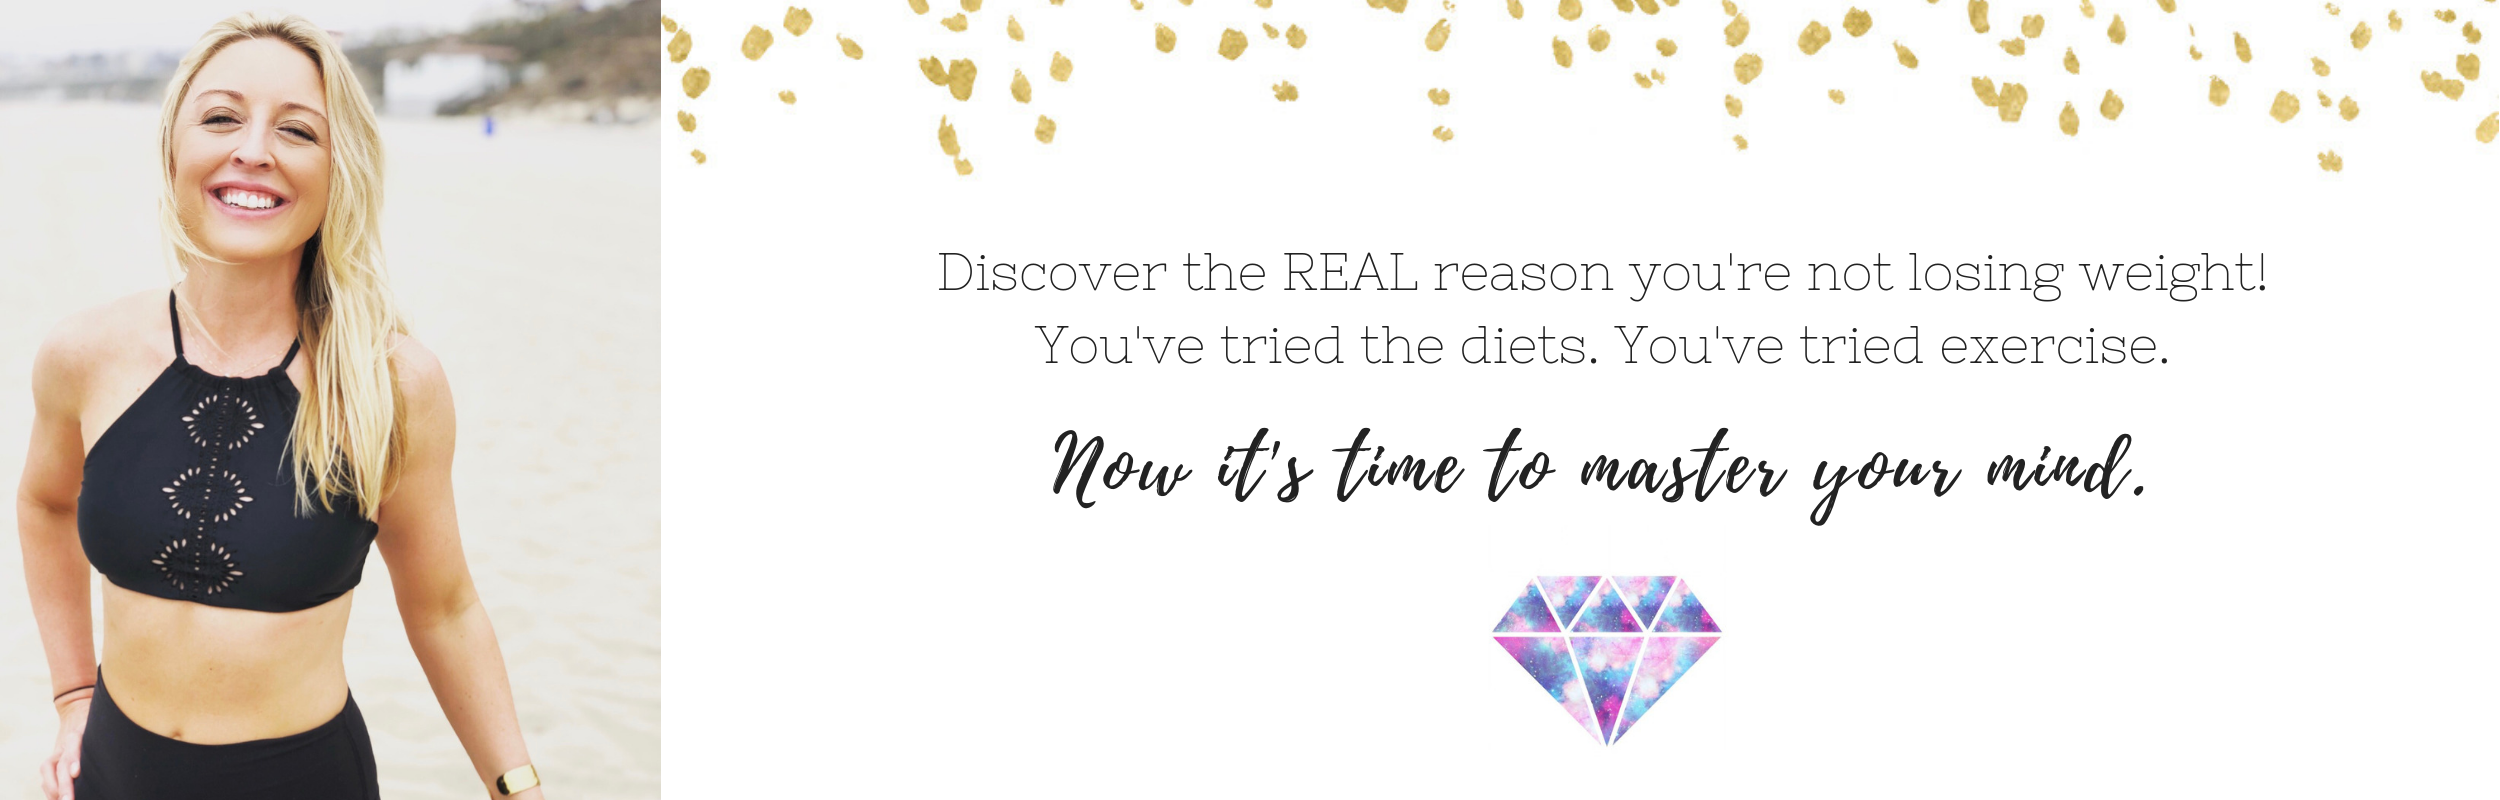 Add sDiscover the REAL reason you're not losing weight!You've tried the diets. You've tried exercise.ubheading1.png